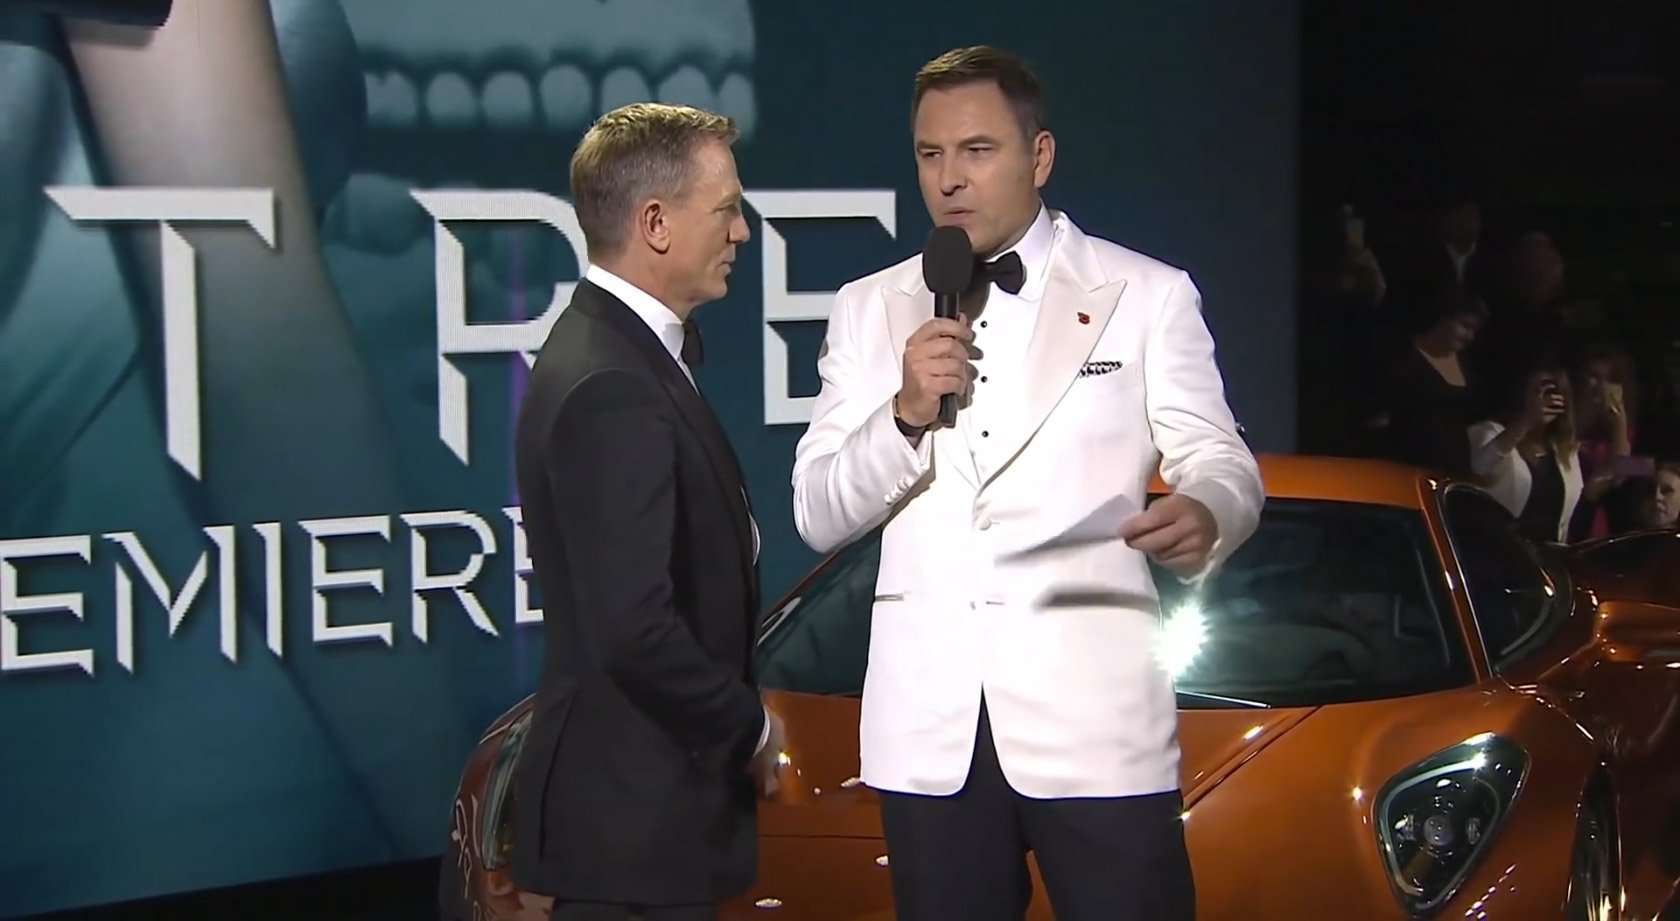 cad3b4eb2f02 Daniel Craig with David Walliams, who is wearing the Tom Ford dinner jacket  from Spectre